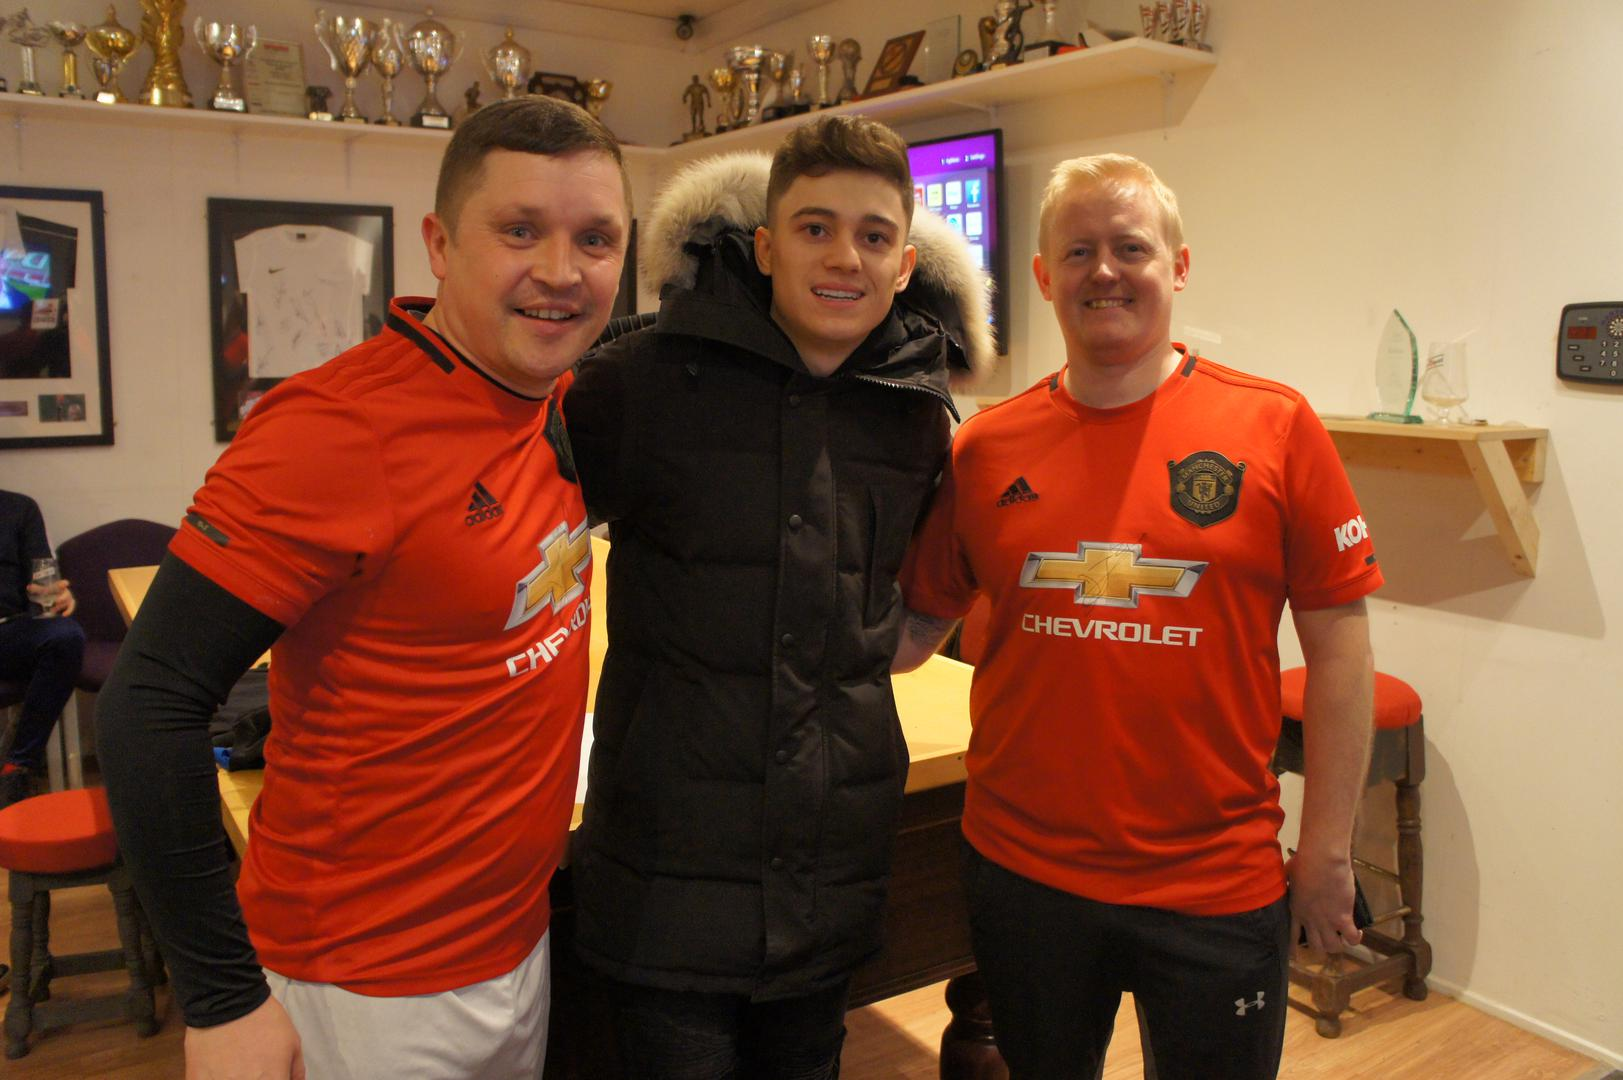 Daniel James with members of Place 2 Place FC on visit to Wigan.